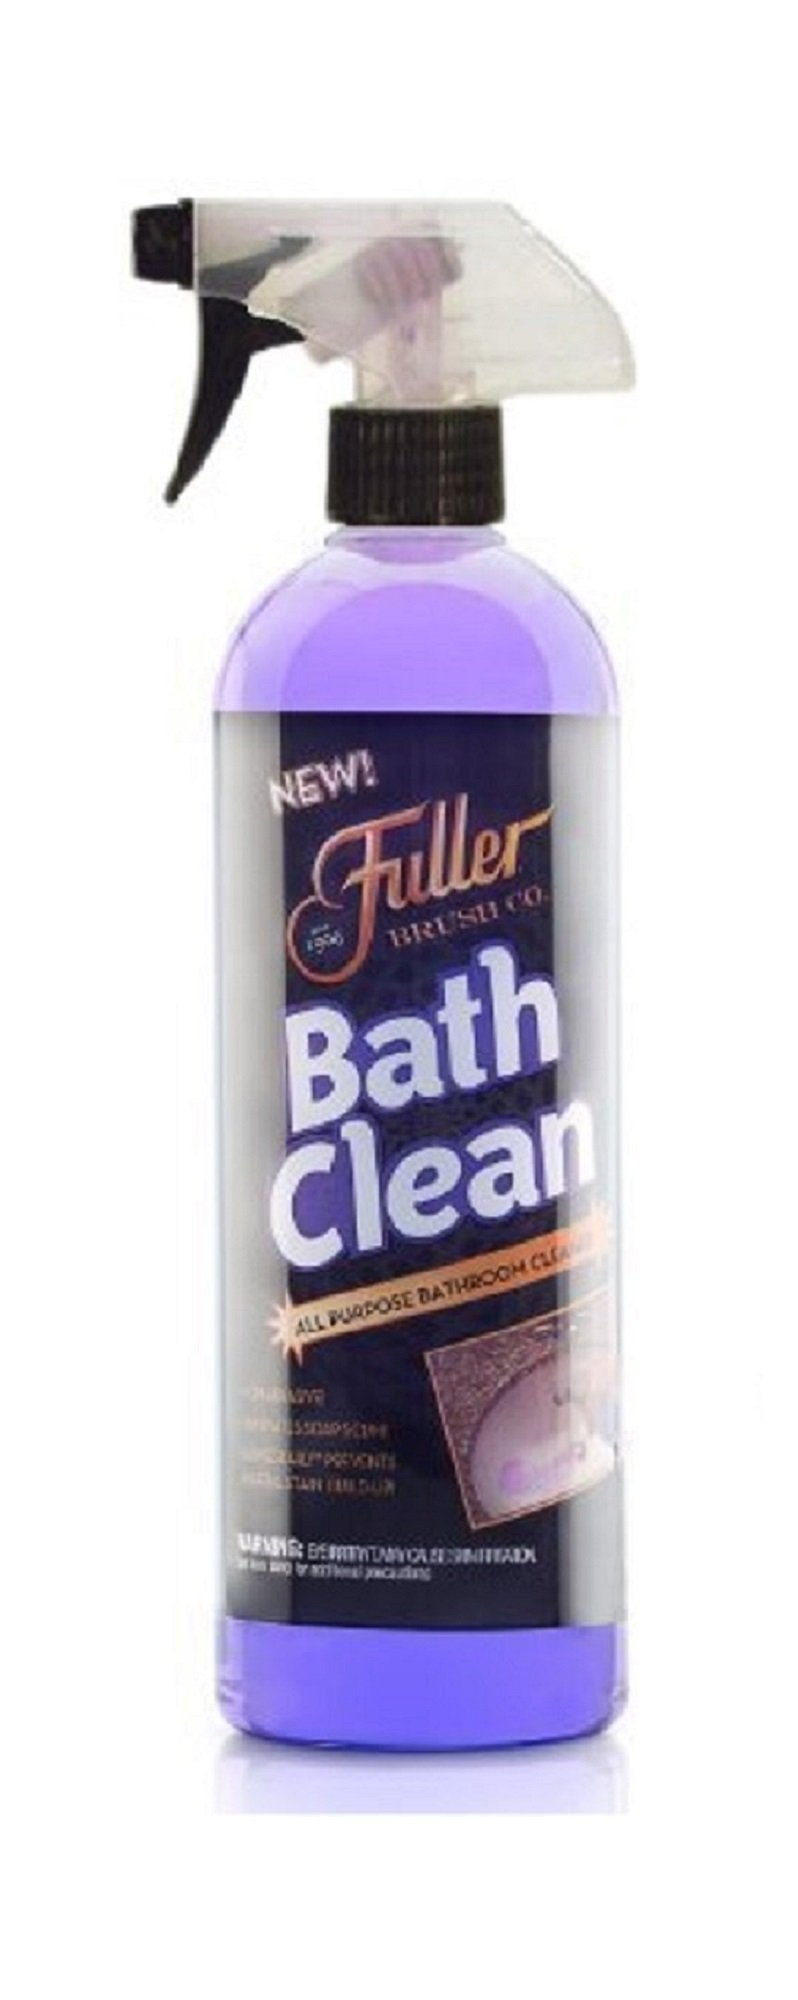 Fuller Brush BathClean Tile and Bathroom Scrubbing Kit with Big EZ Bath Scrubber & Squeege by Fuller Brush (Image #3)